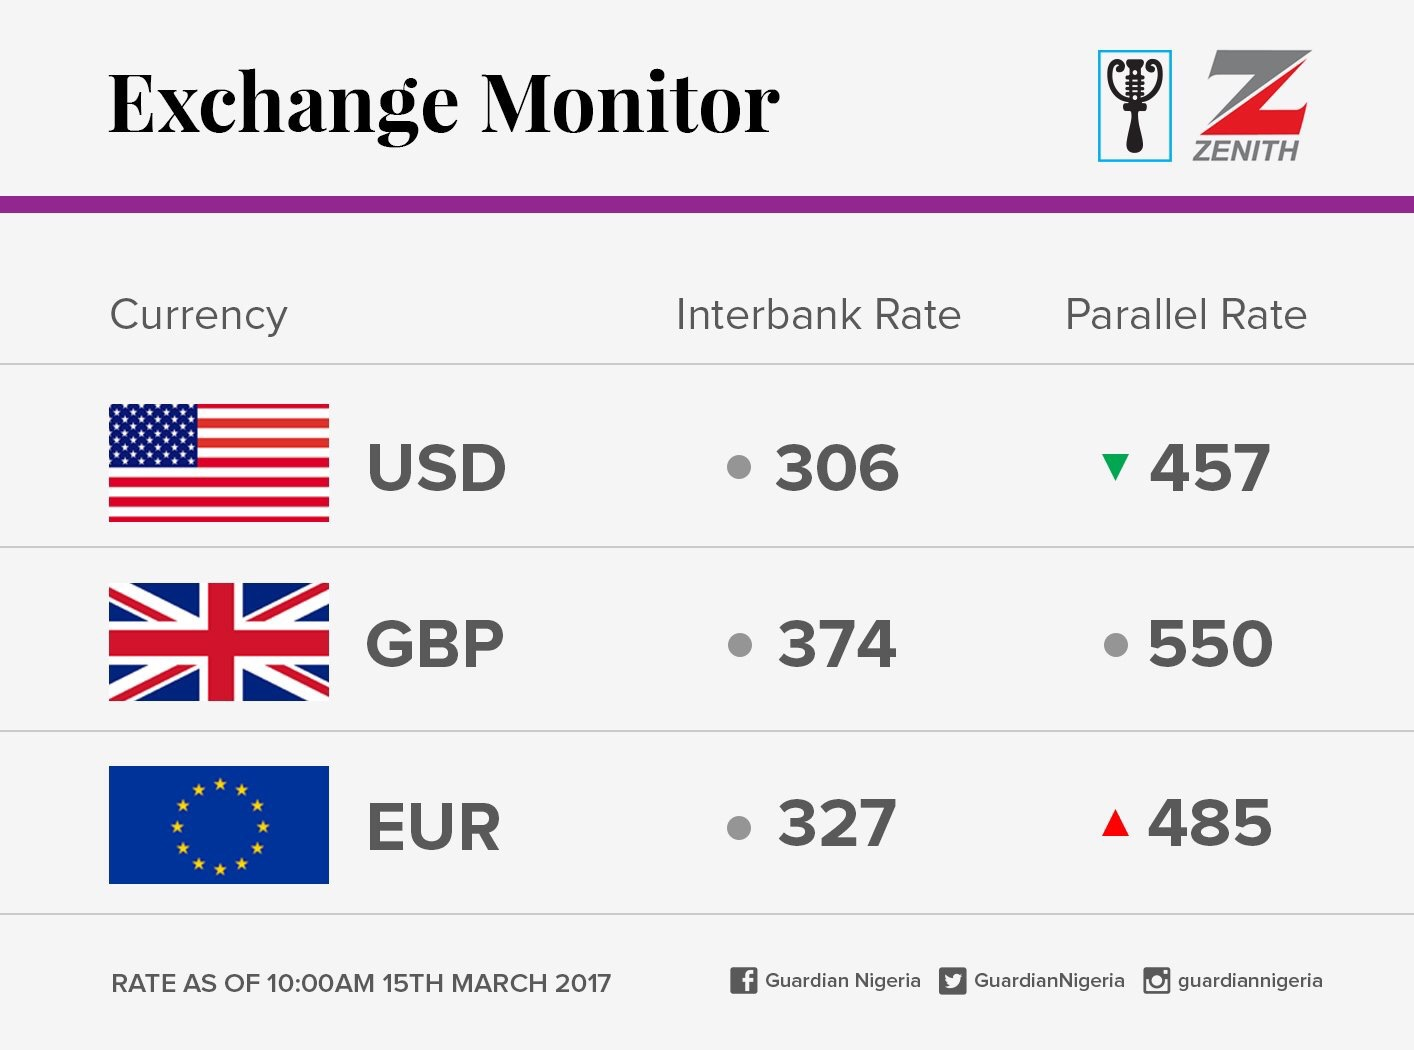 Exchange Rate For 15th March 2017